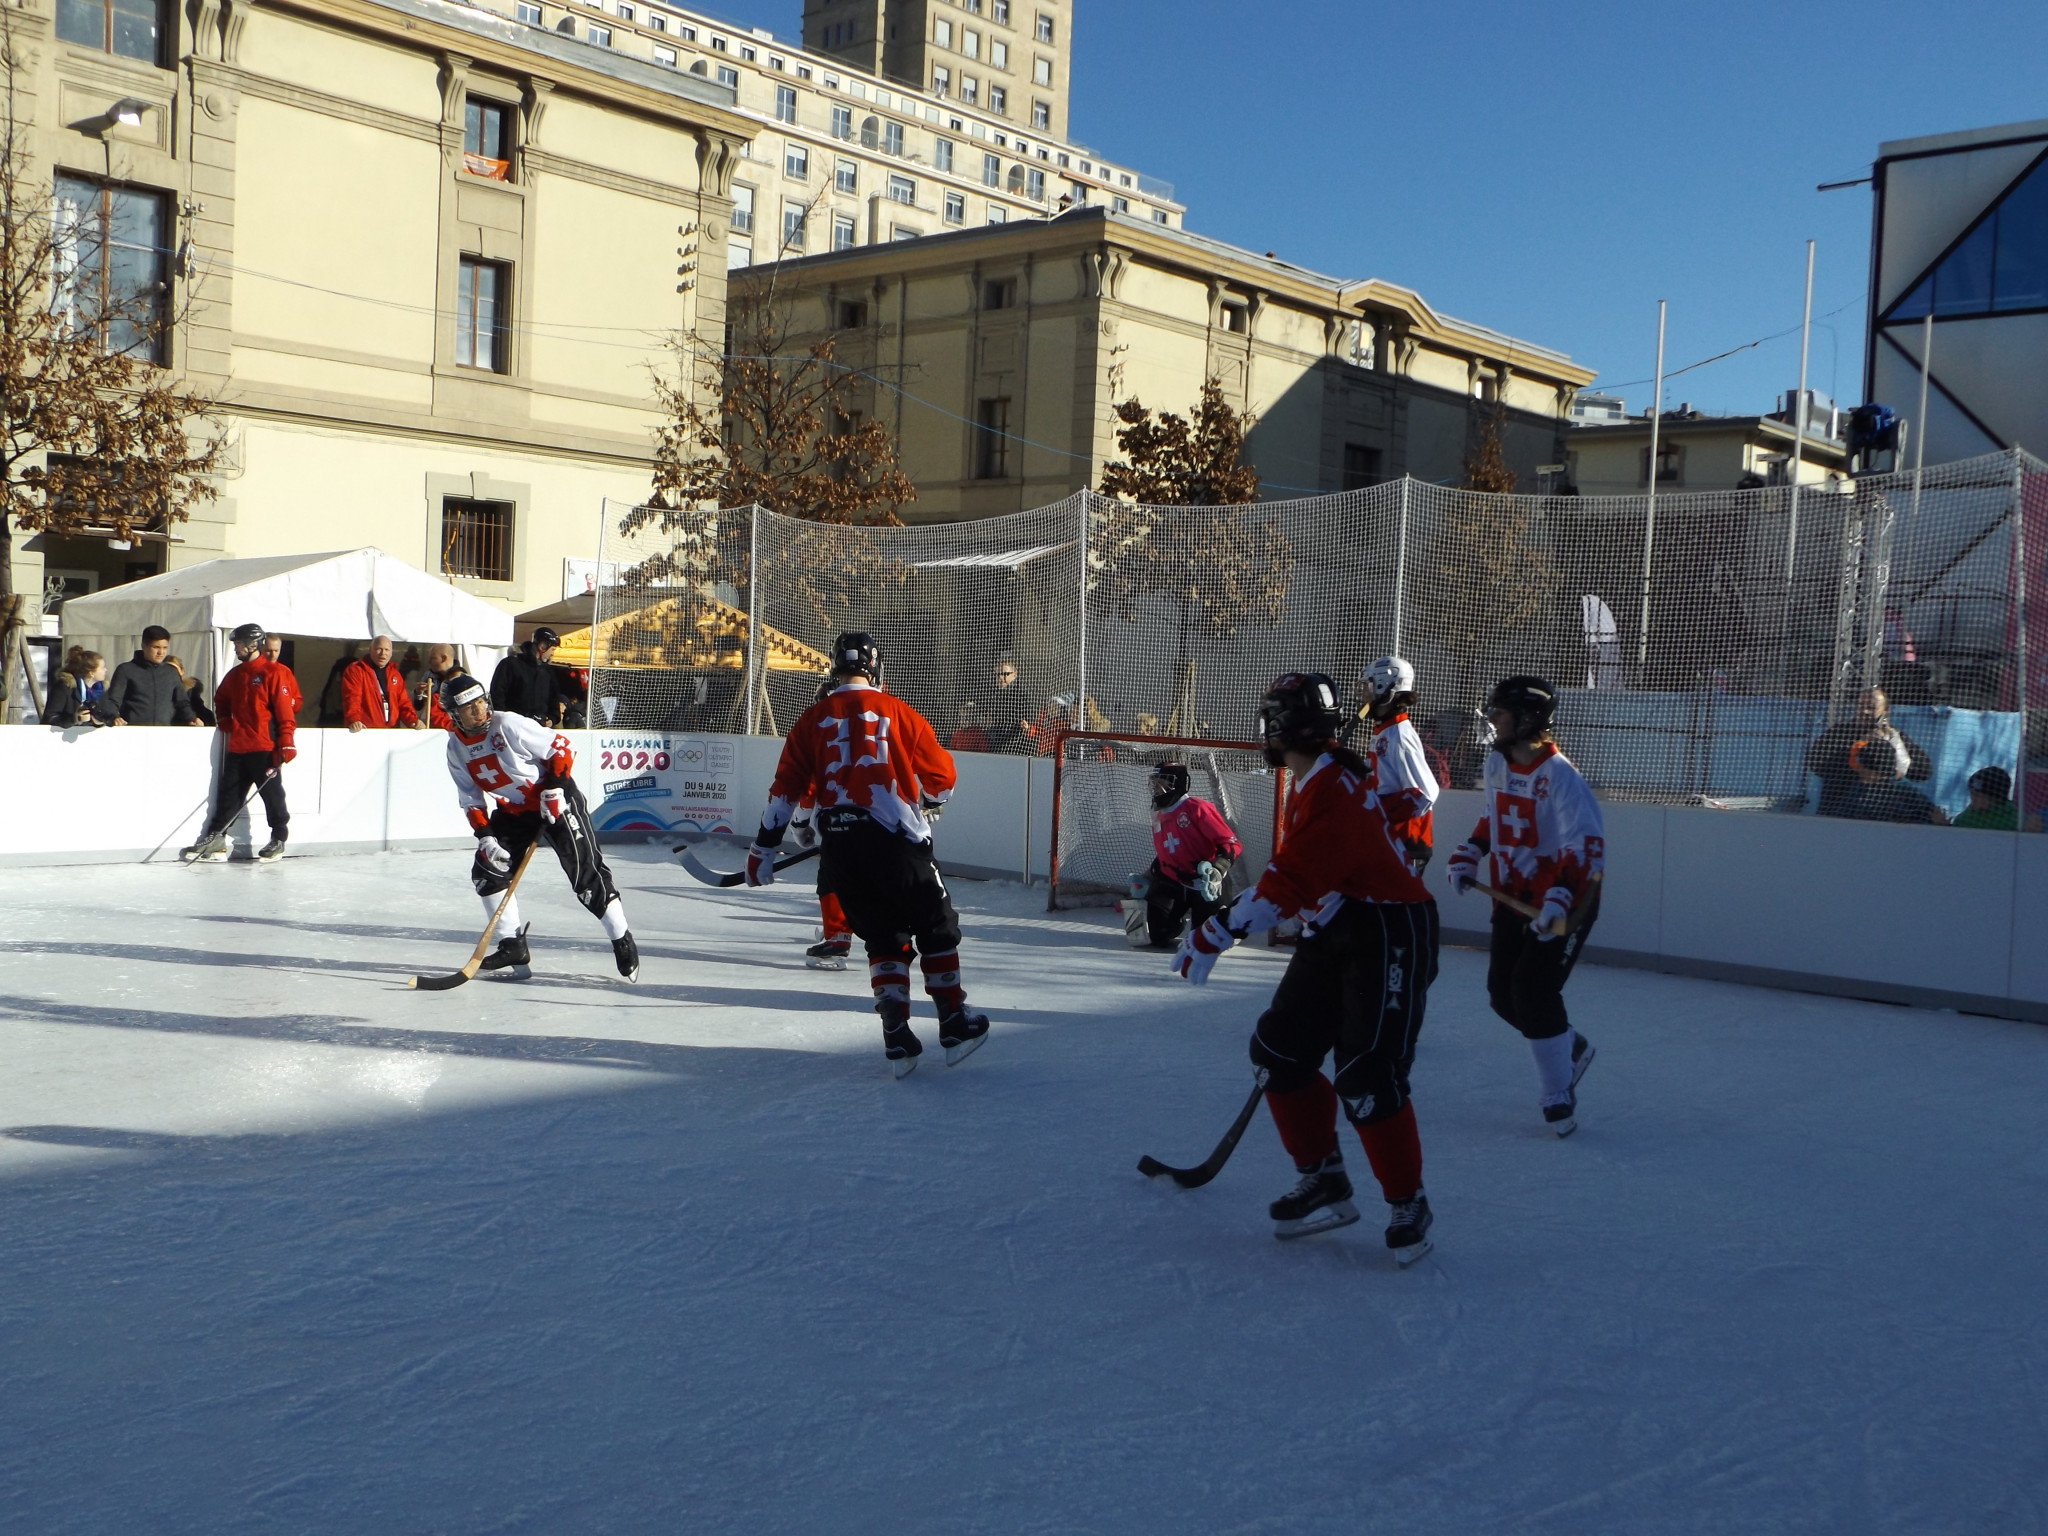 Bandy was demonstrated at the Lausanne 2020 Winter Youth Olympic Games ©ITG